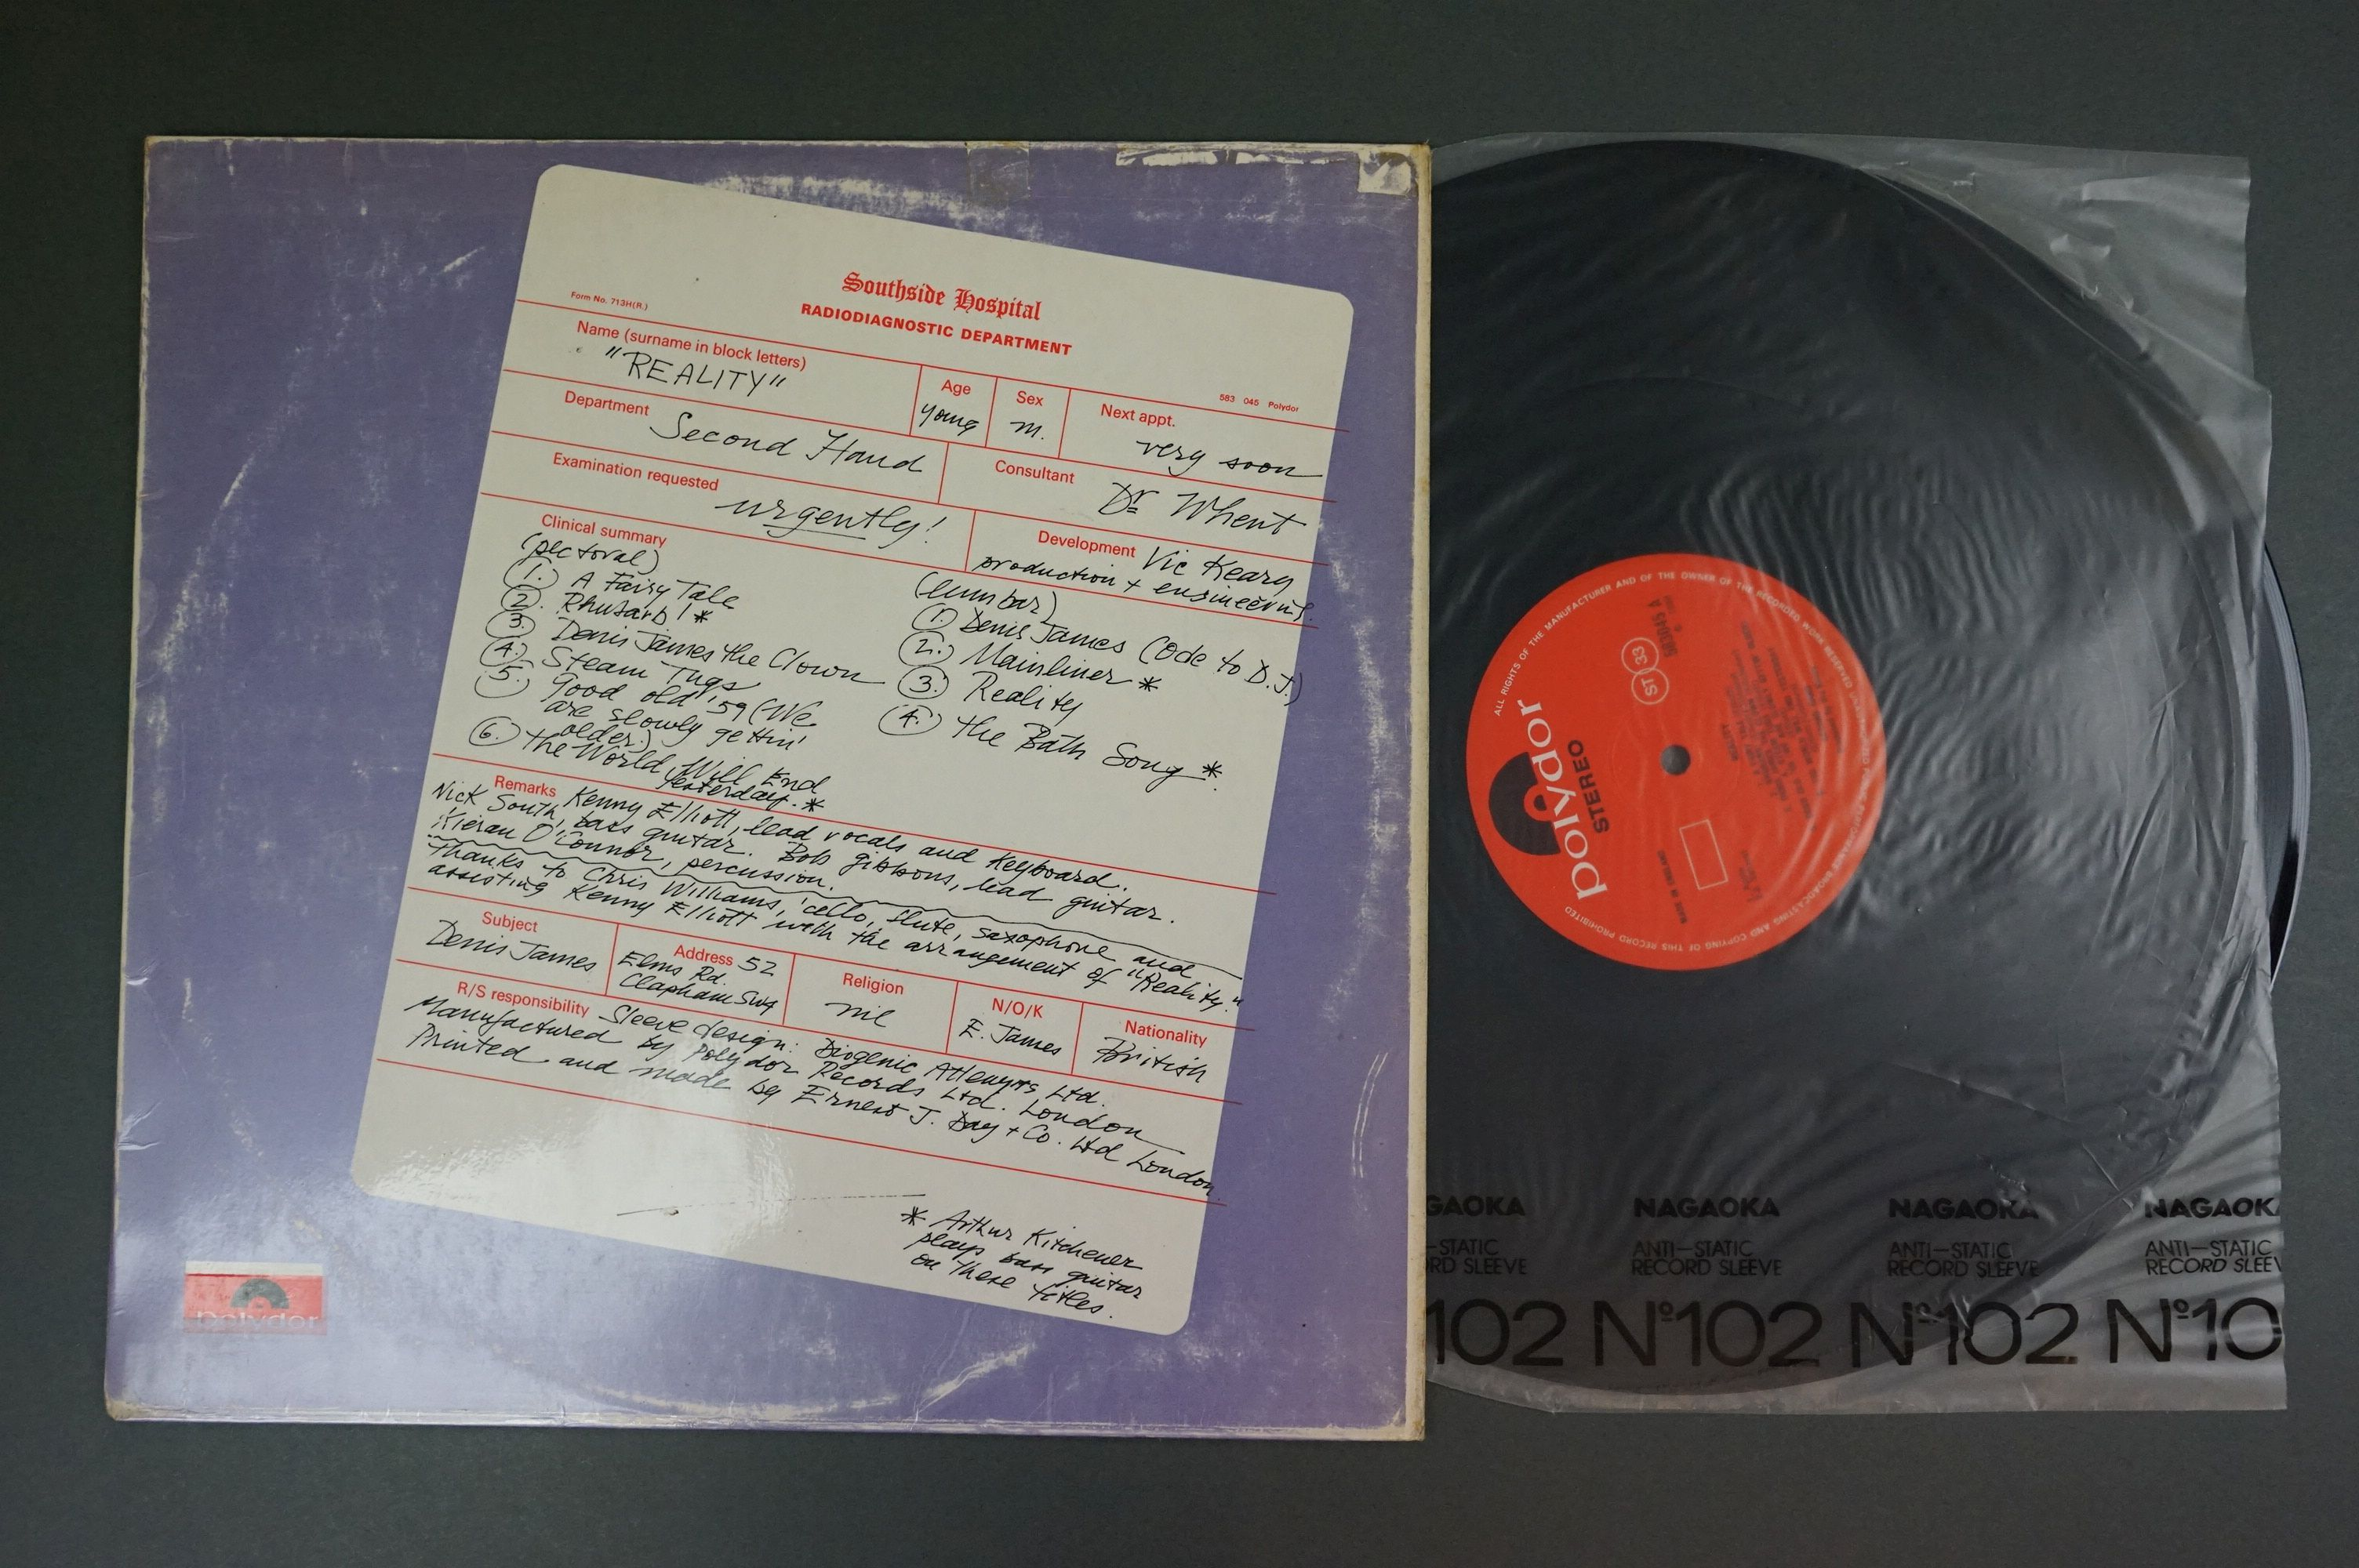 Vinyl - Two Second Hand LPs to include Death May Be Your Santa Claus (Mushroom 200) and Reality on - Image 4 of 4